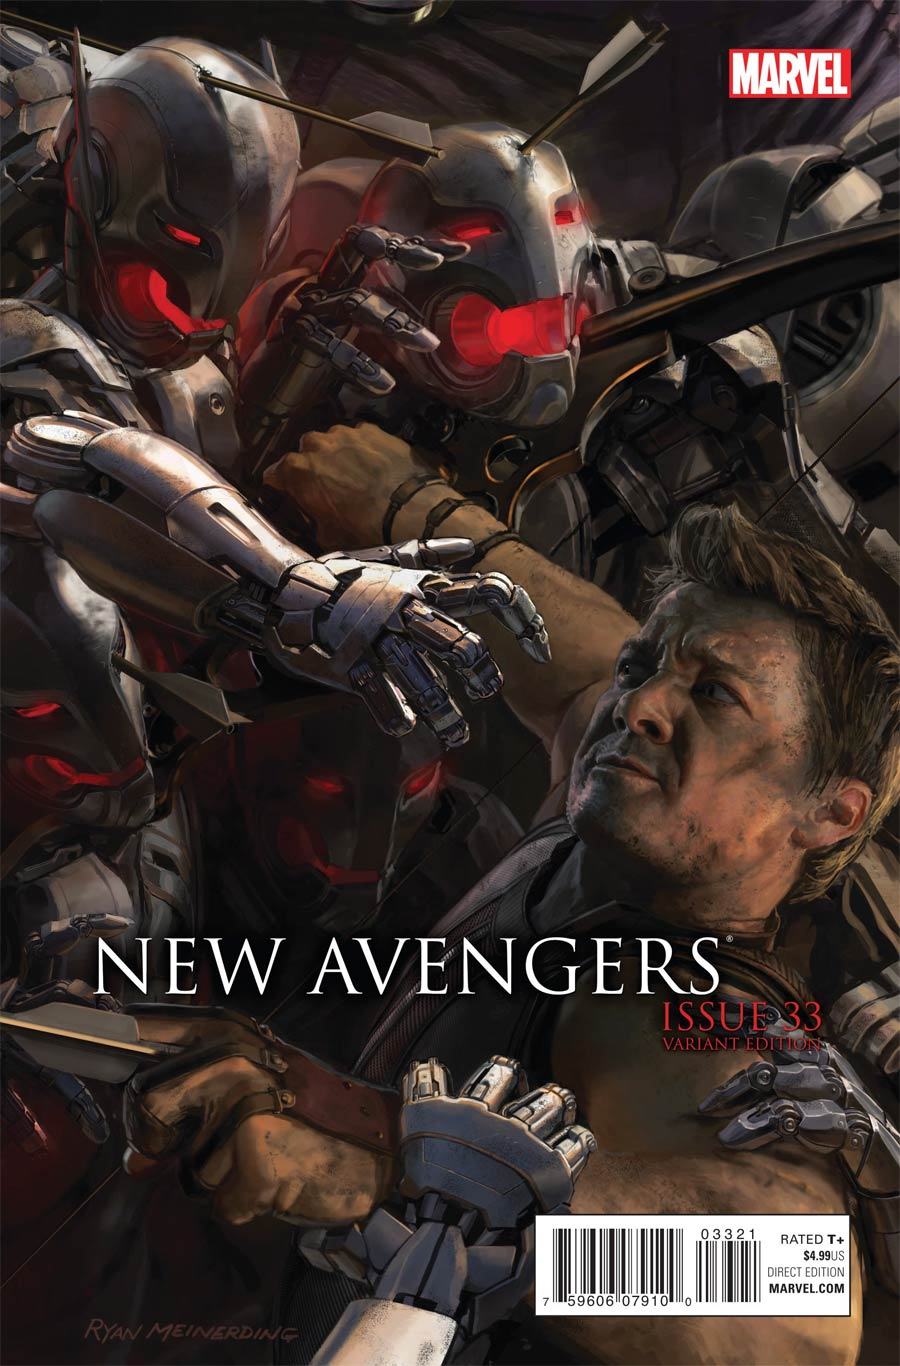 New Avengers Vol 3 #33 Cover D Incentive Avengers Age Of Ultron Movie Connecting D Variant Cover (Time Runs Out Tie-In)